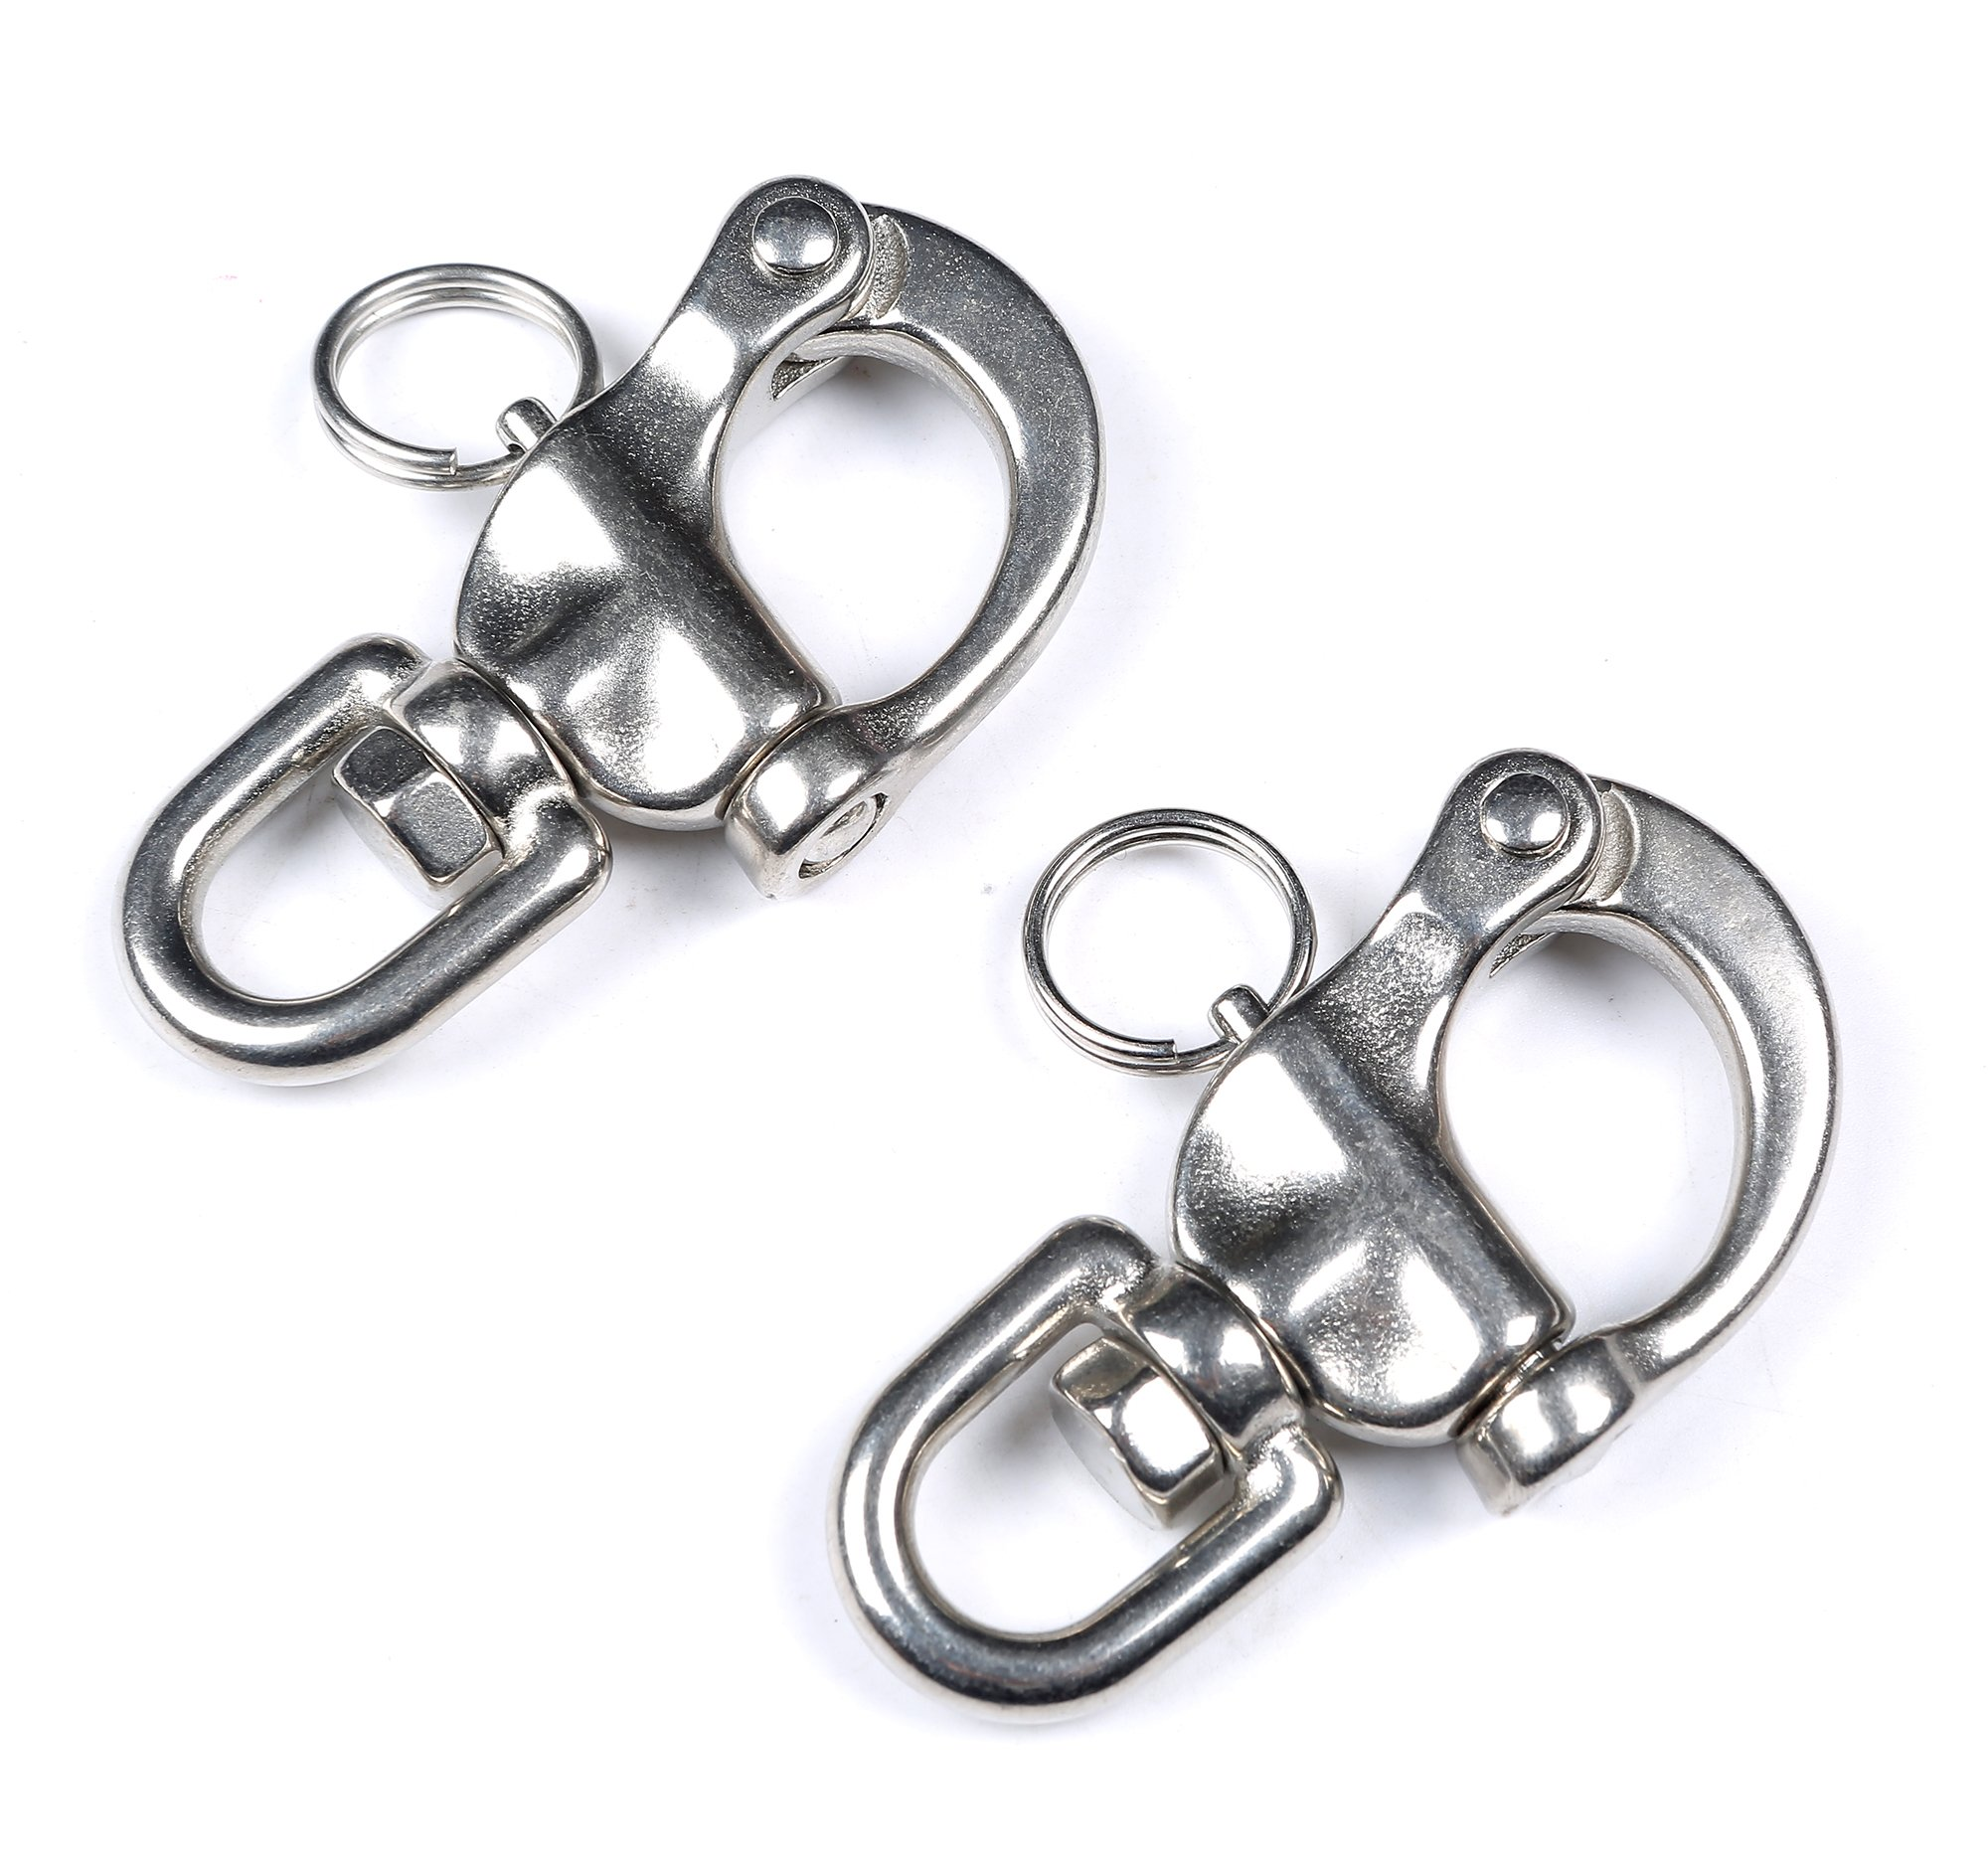 Mxeol Swivel Eye Snap Shackle Quick Release Bail Rigging Sailing Boat Marine Stainless Steel Clip Pair (2-3/4'' Pair)